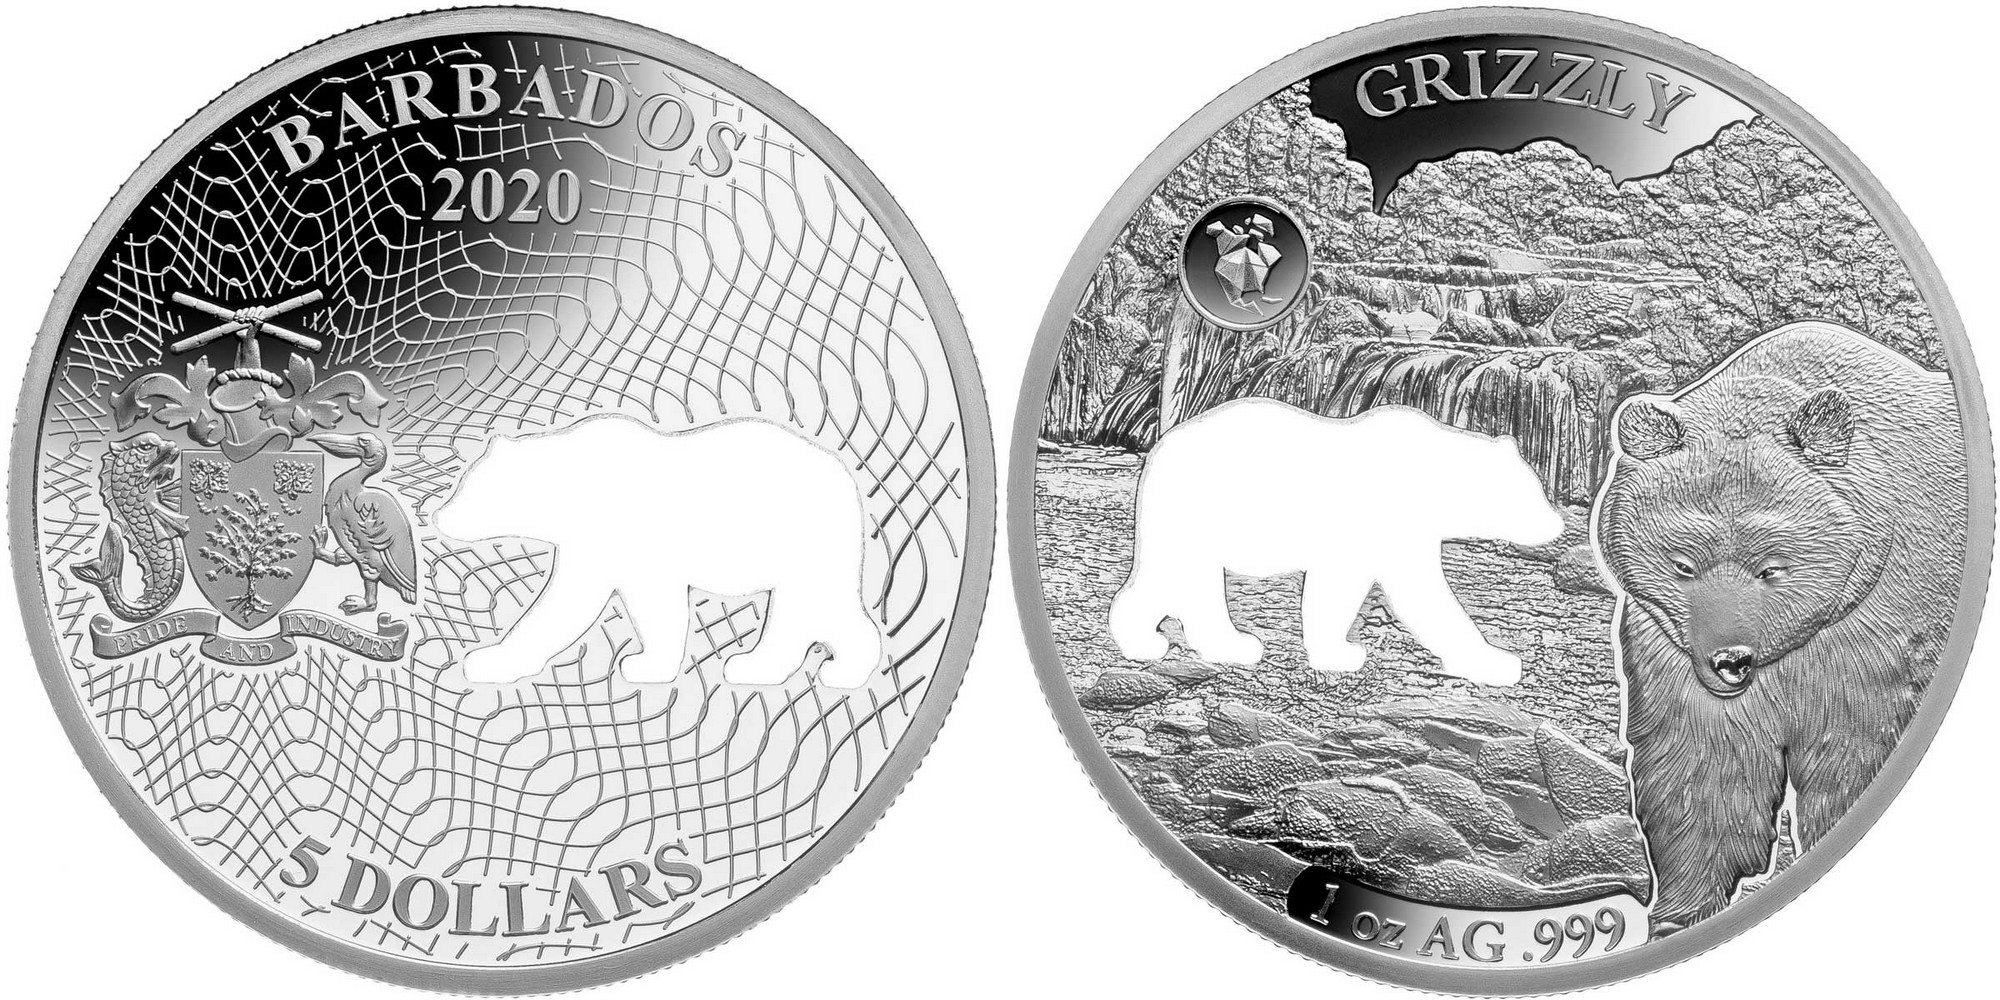 barbade-2020-formes-damérique-grizzly